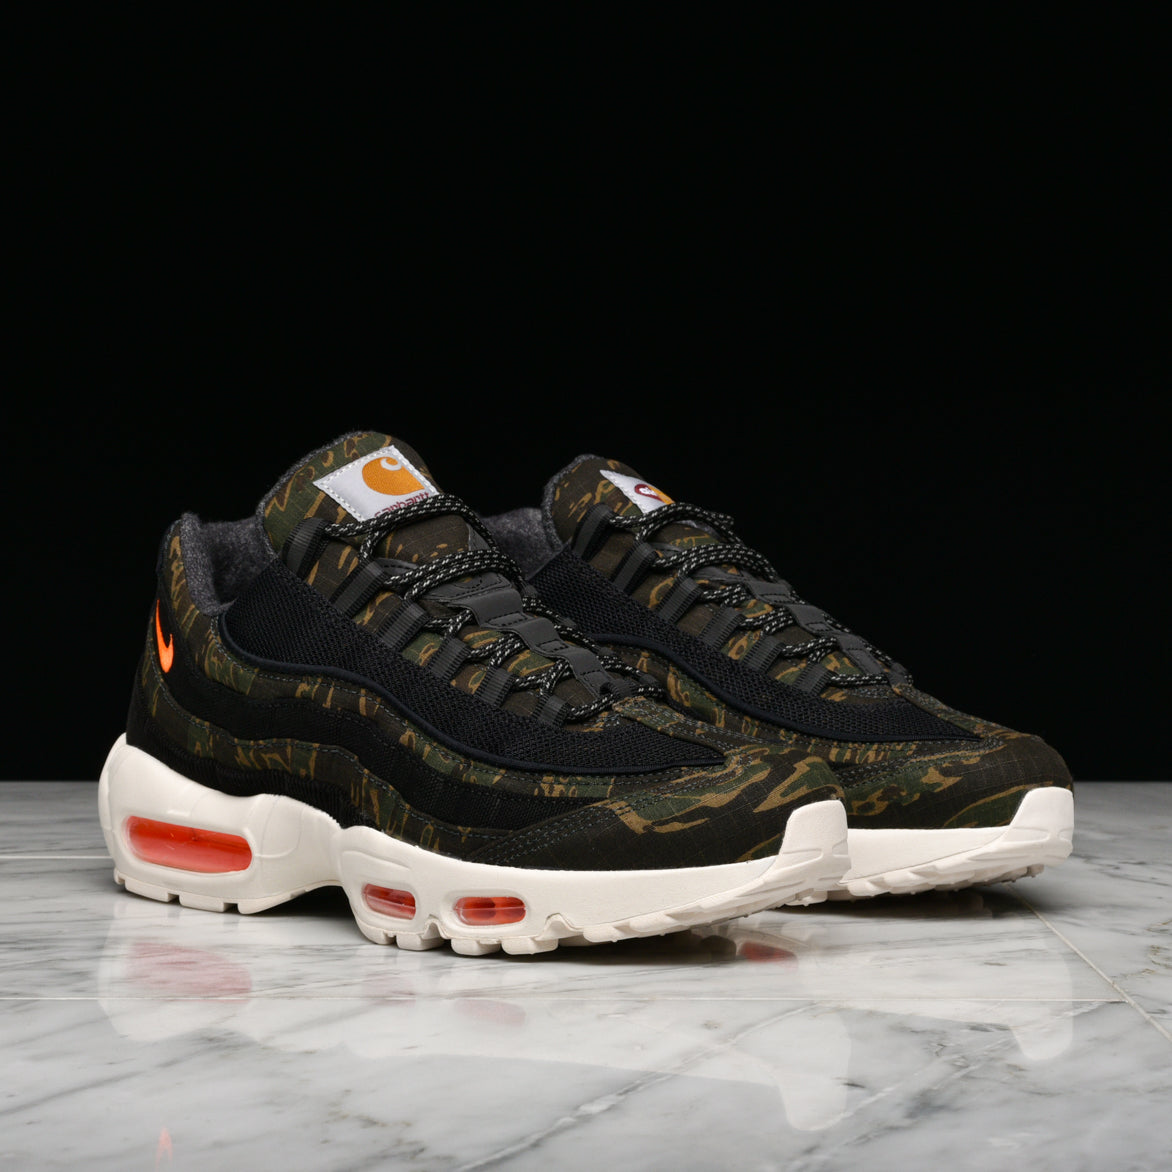 8ab9482b7ebc1 ... CARHARTT WIP X NIKE AIR MAX 95 - BLACK / TOTAL ORANGE ...